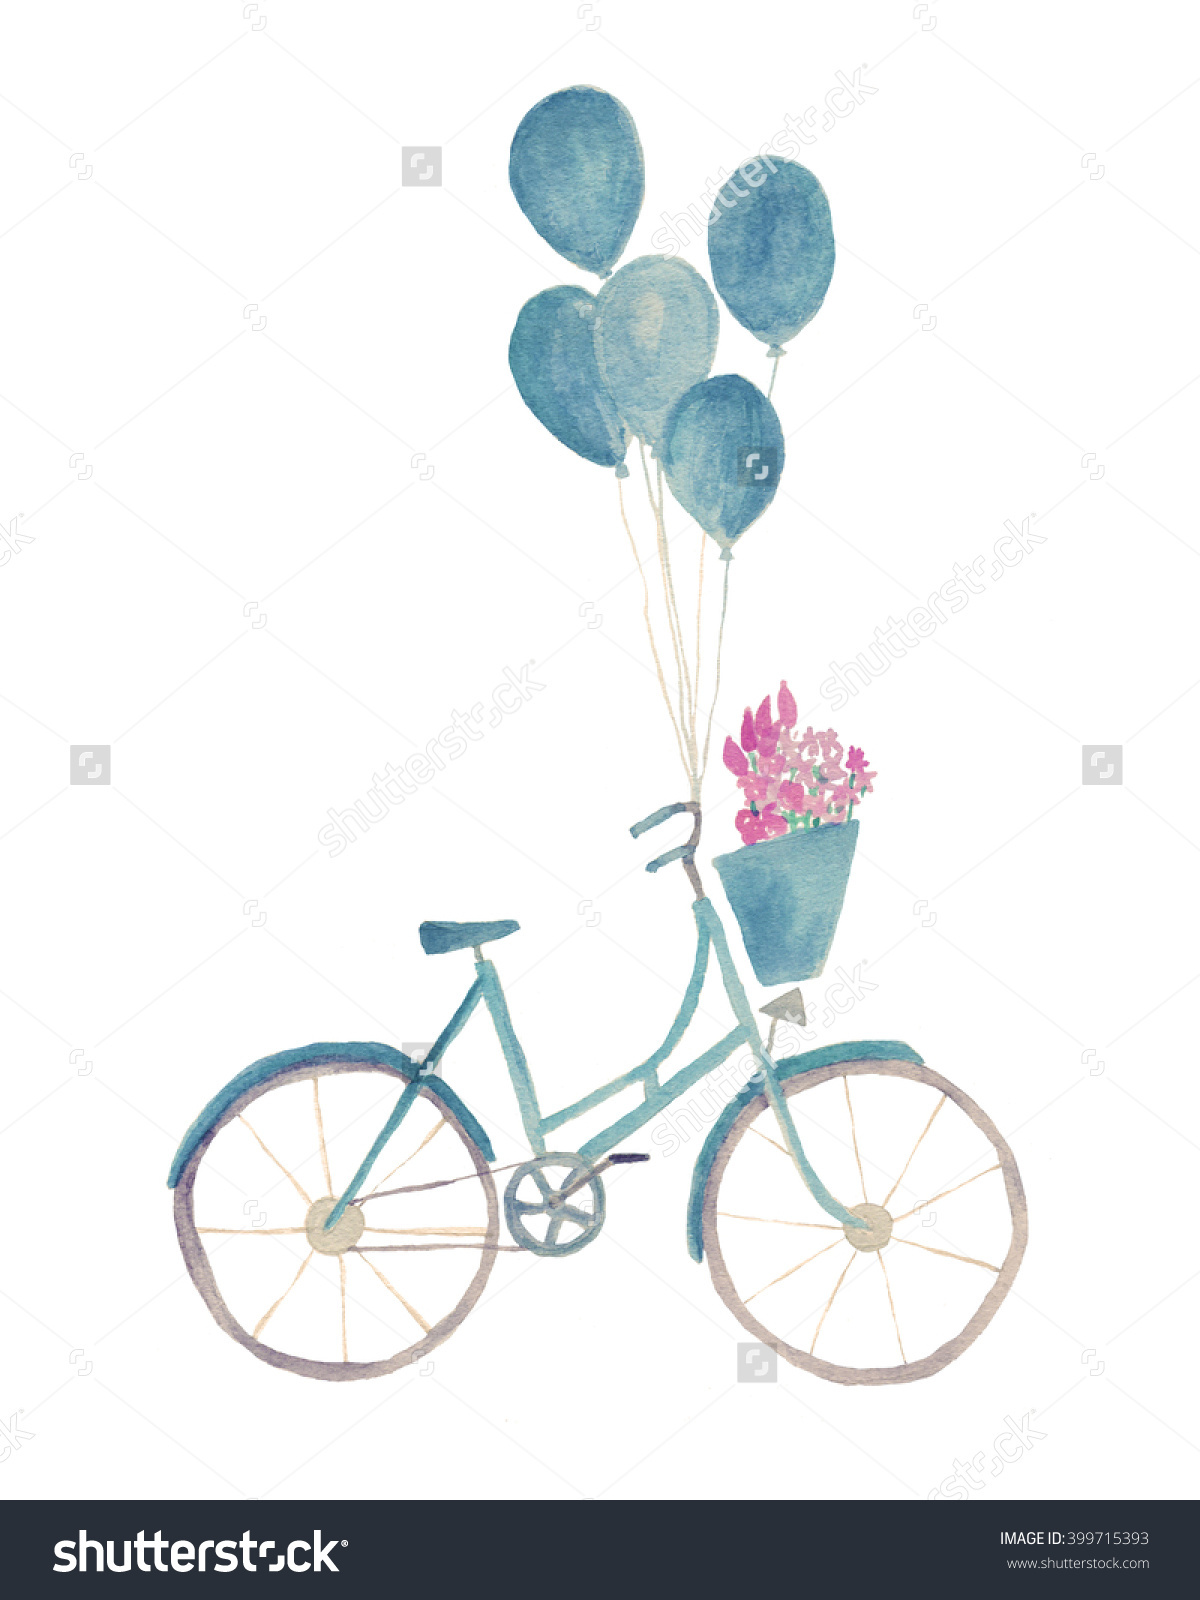 Watercolor Bicycle Illustration Basket Flowers Balloons Stock.